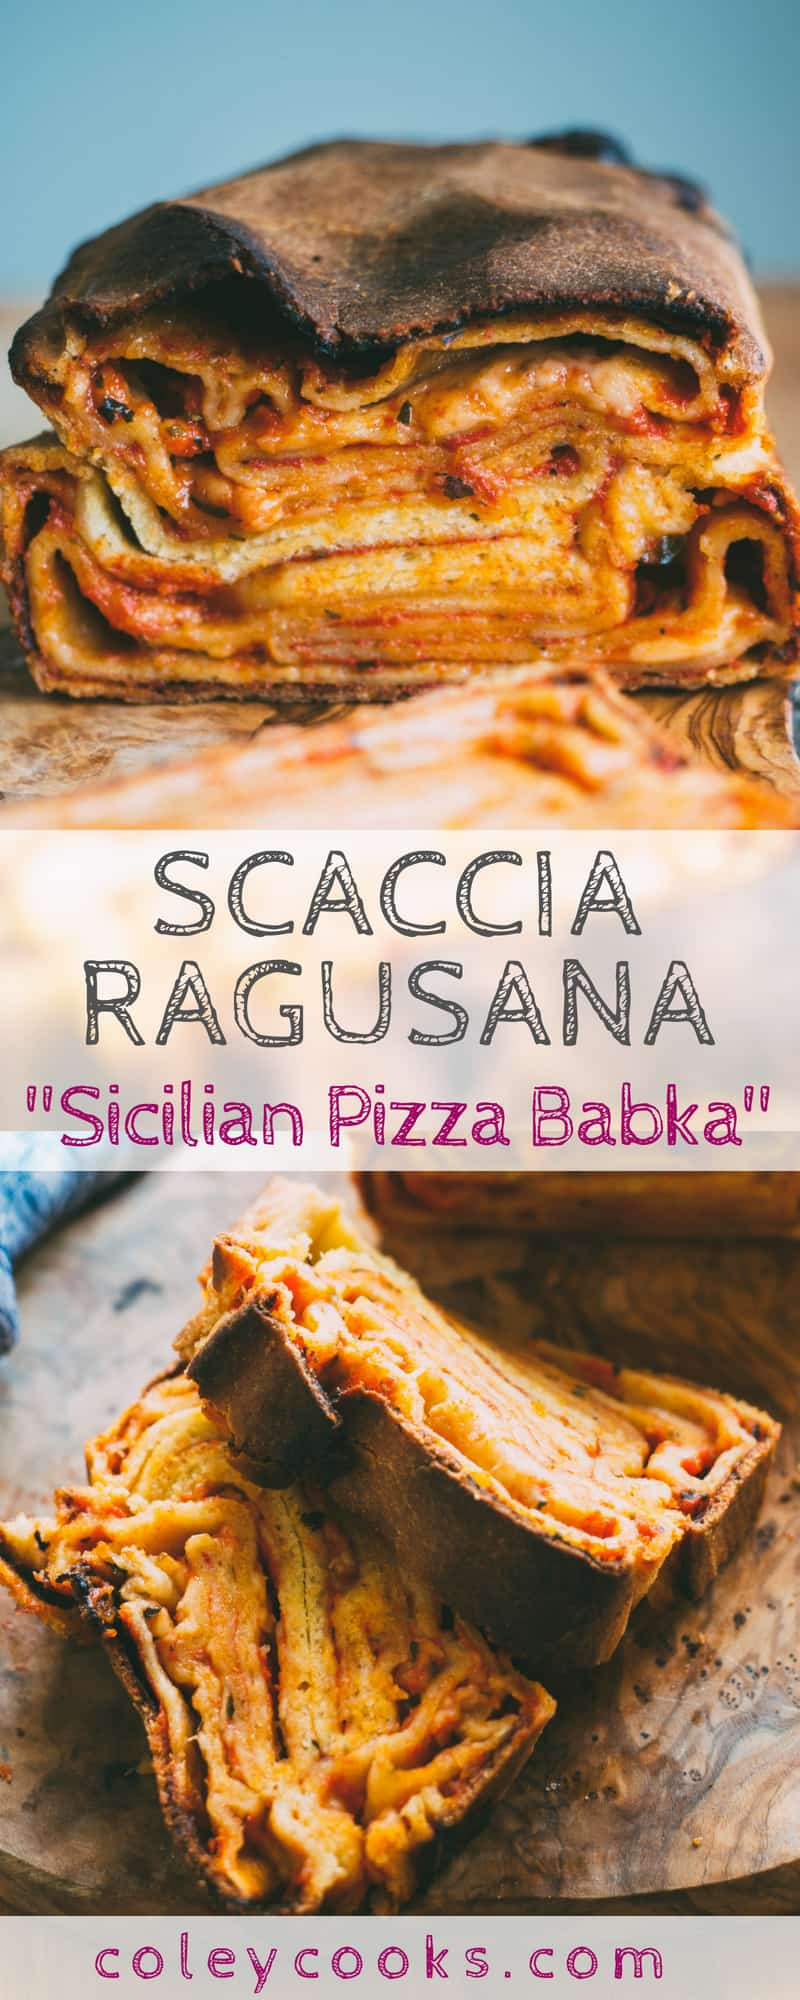 "SCACCIA RAGUSANA: Sicilian ""Pizza Babka"" 